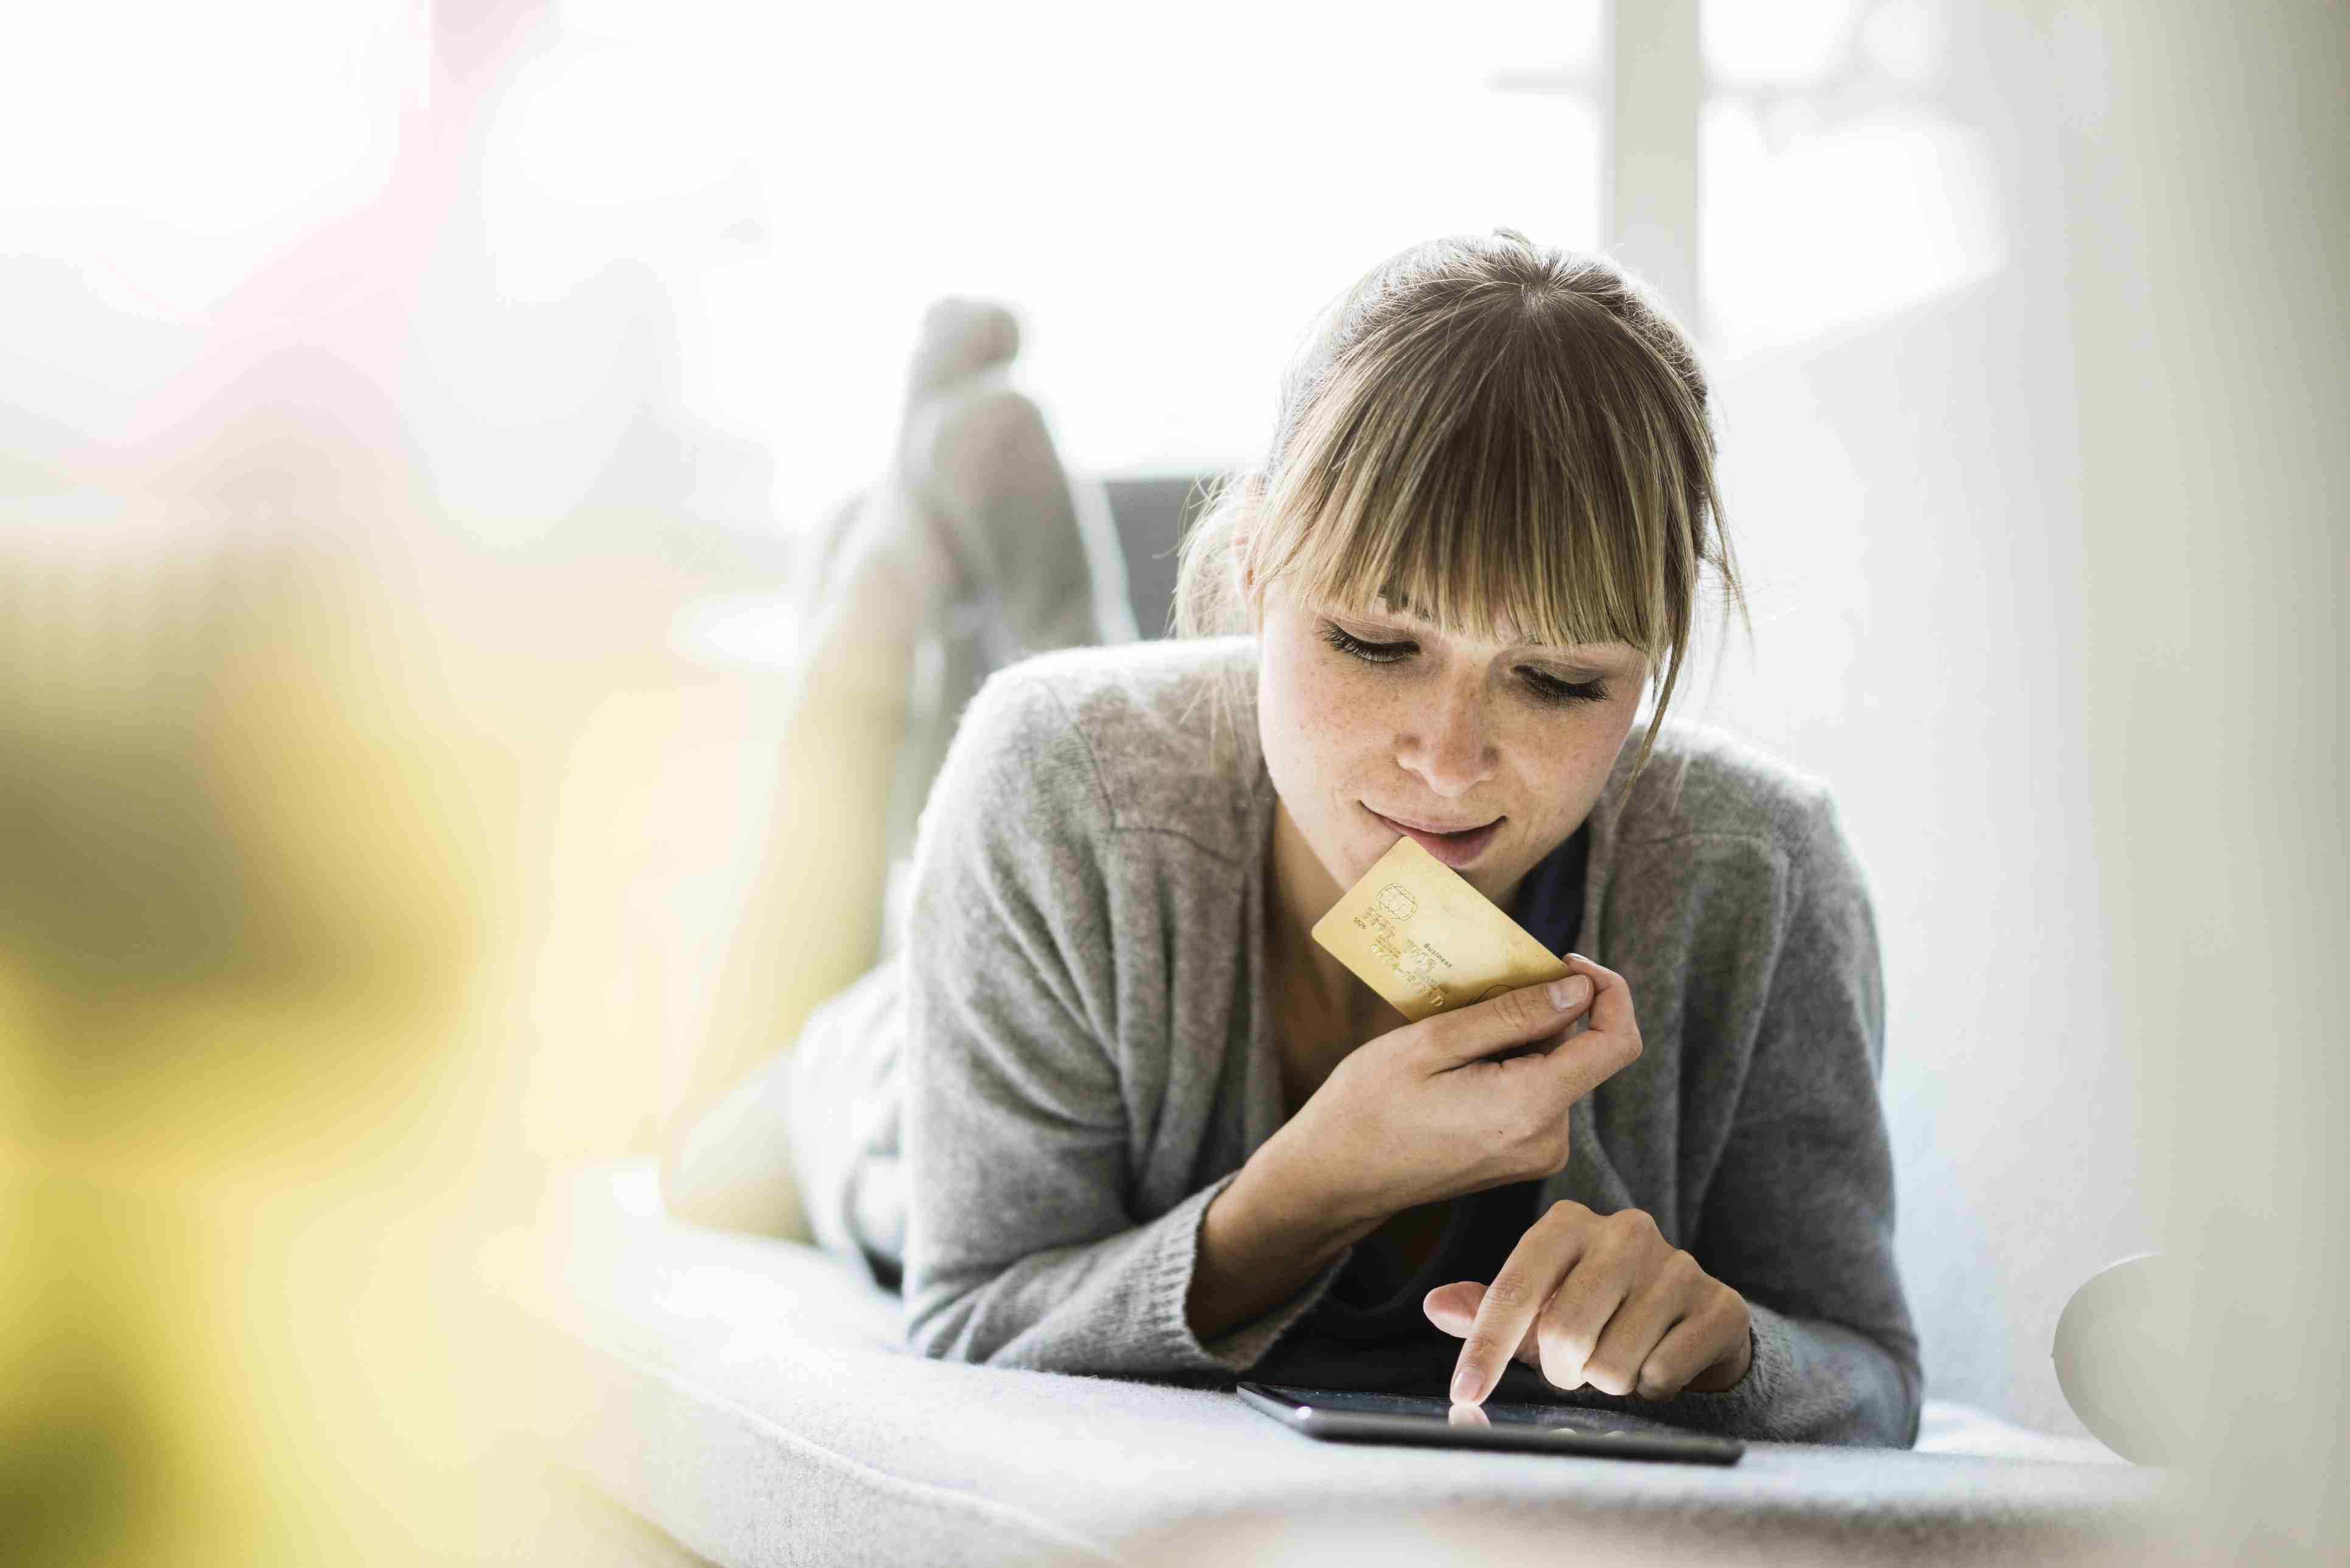 Woman lying on couch with credit card and tablet